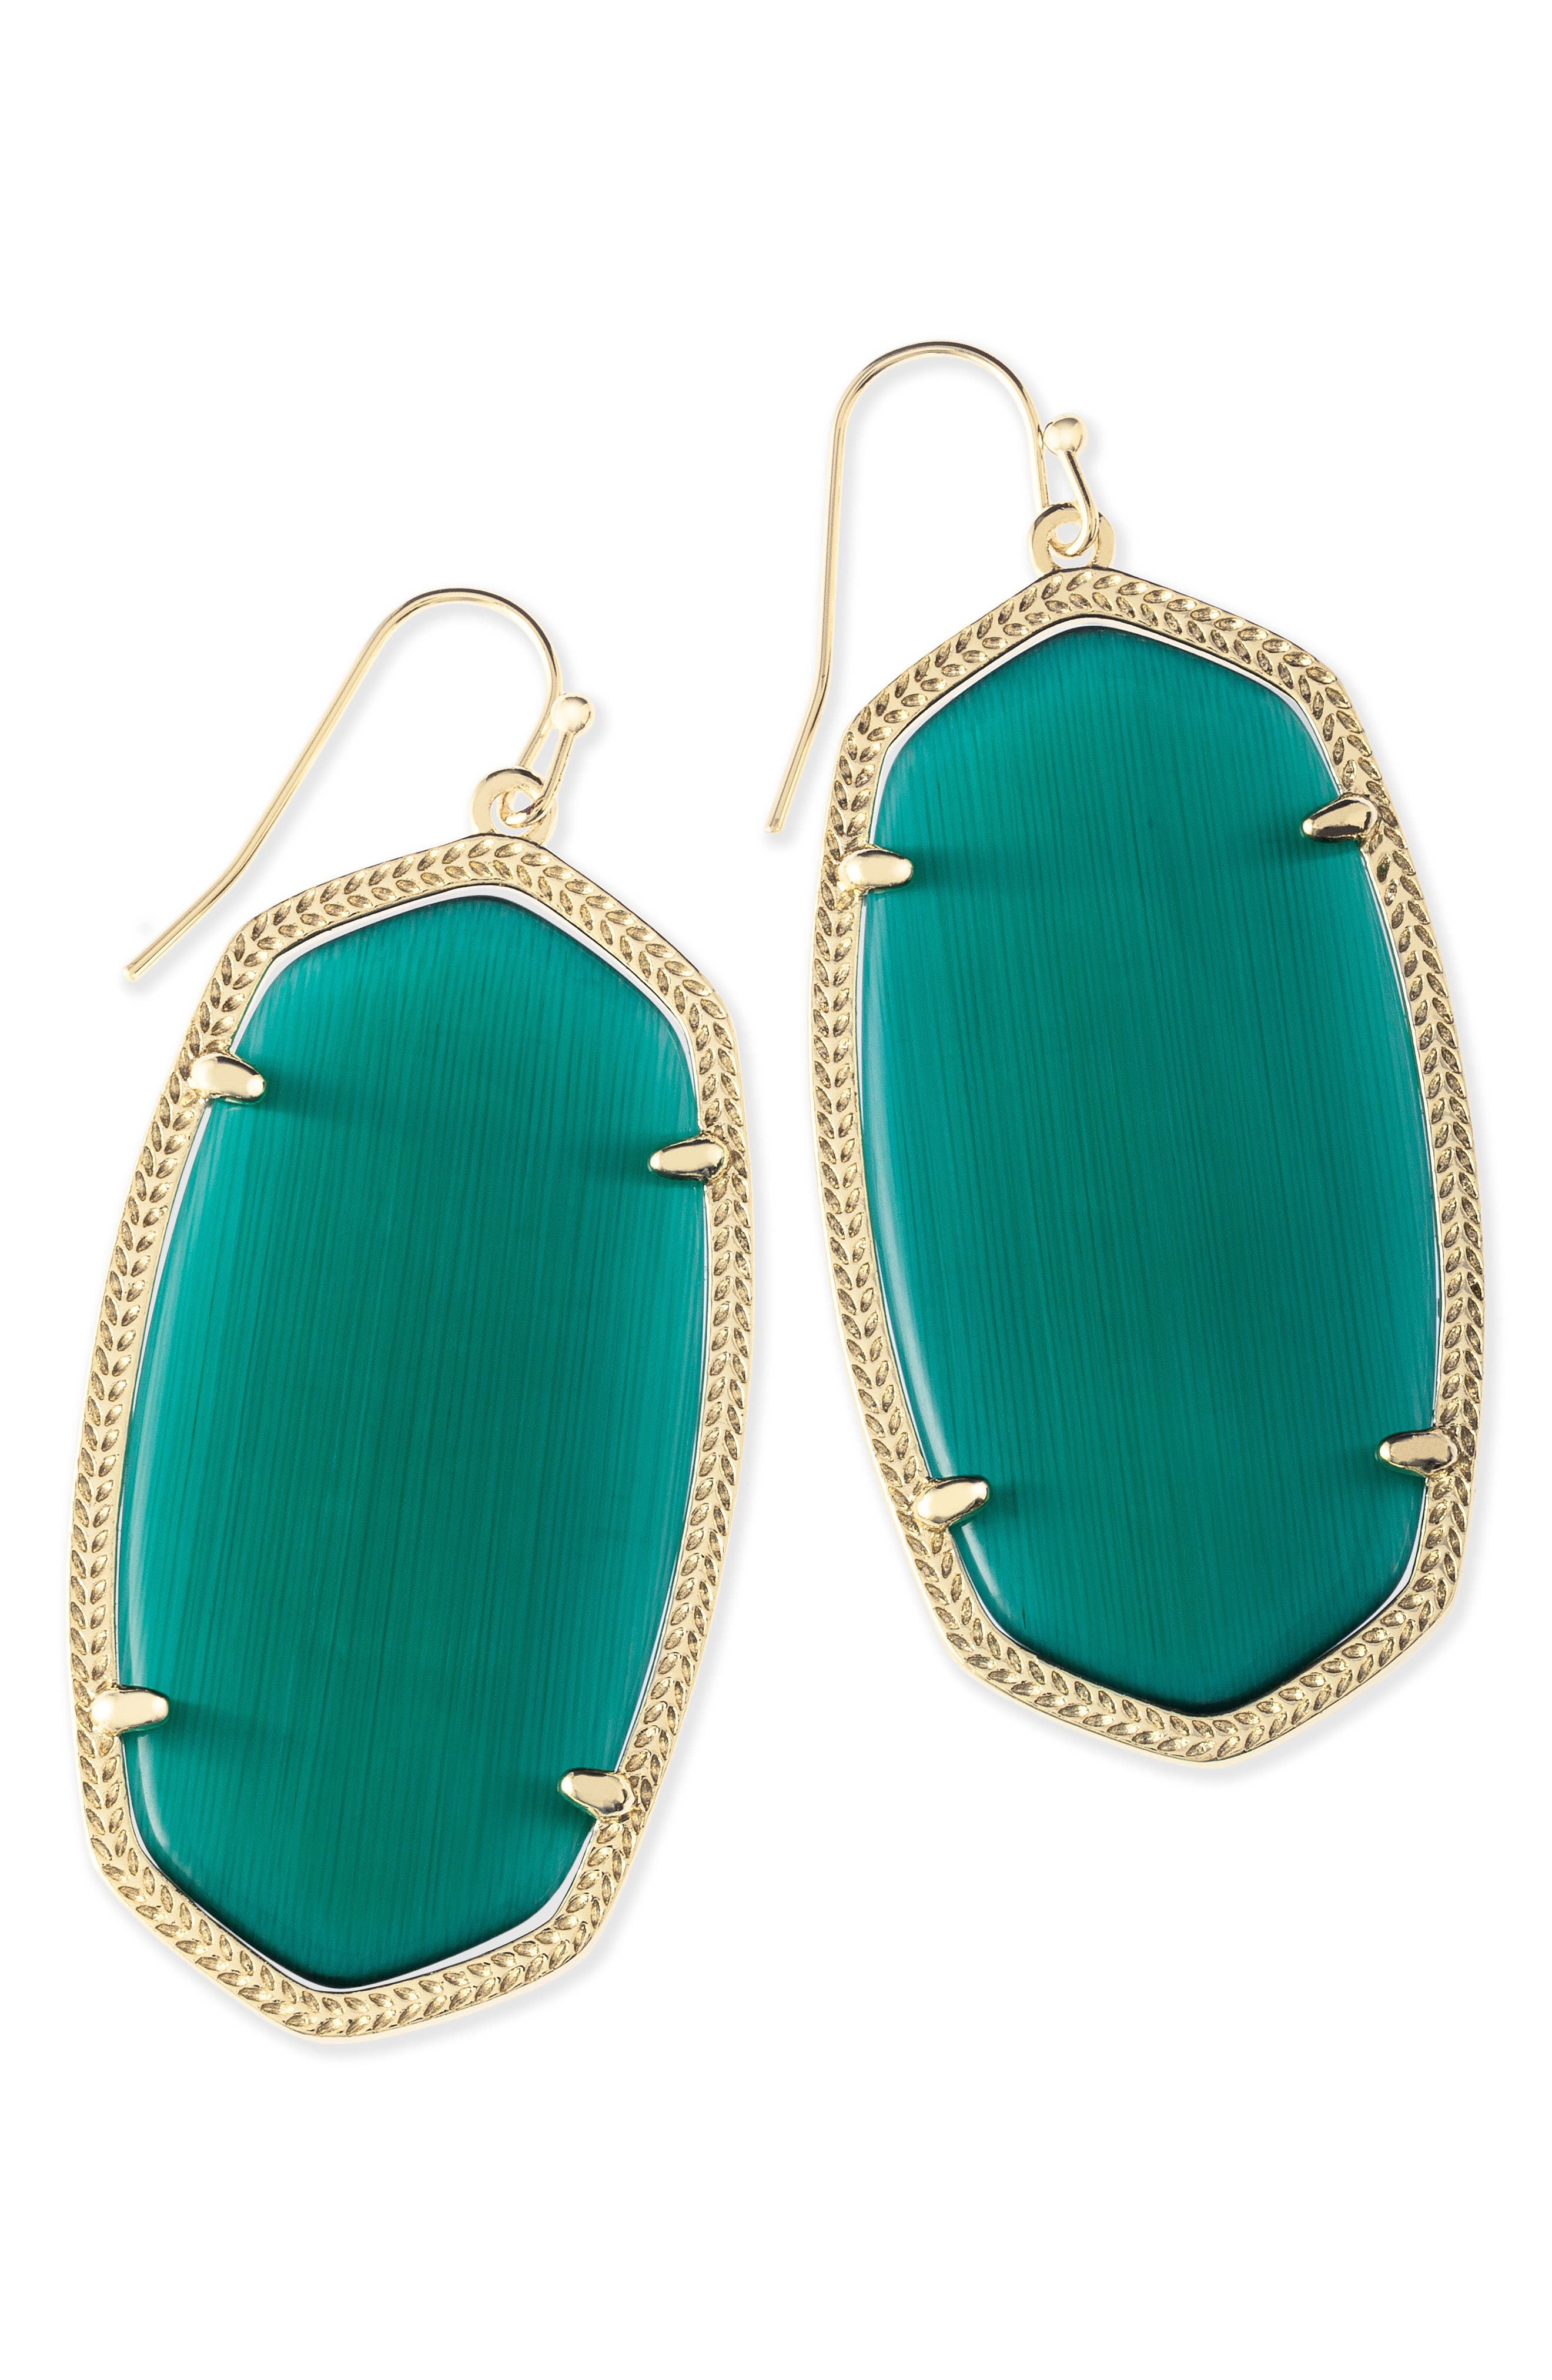 Danielle - Large Oval Statement Earrings,                             Alternate thumbnail 192, color,